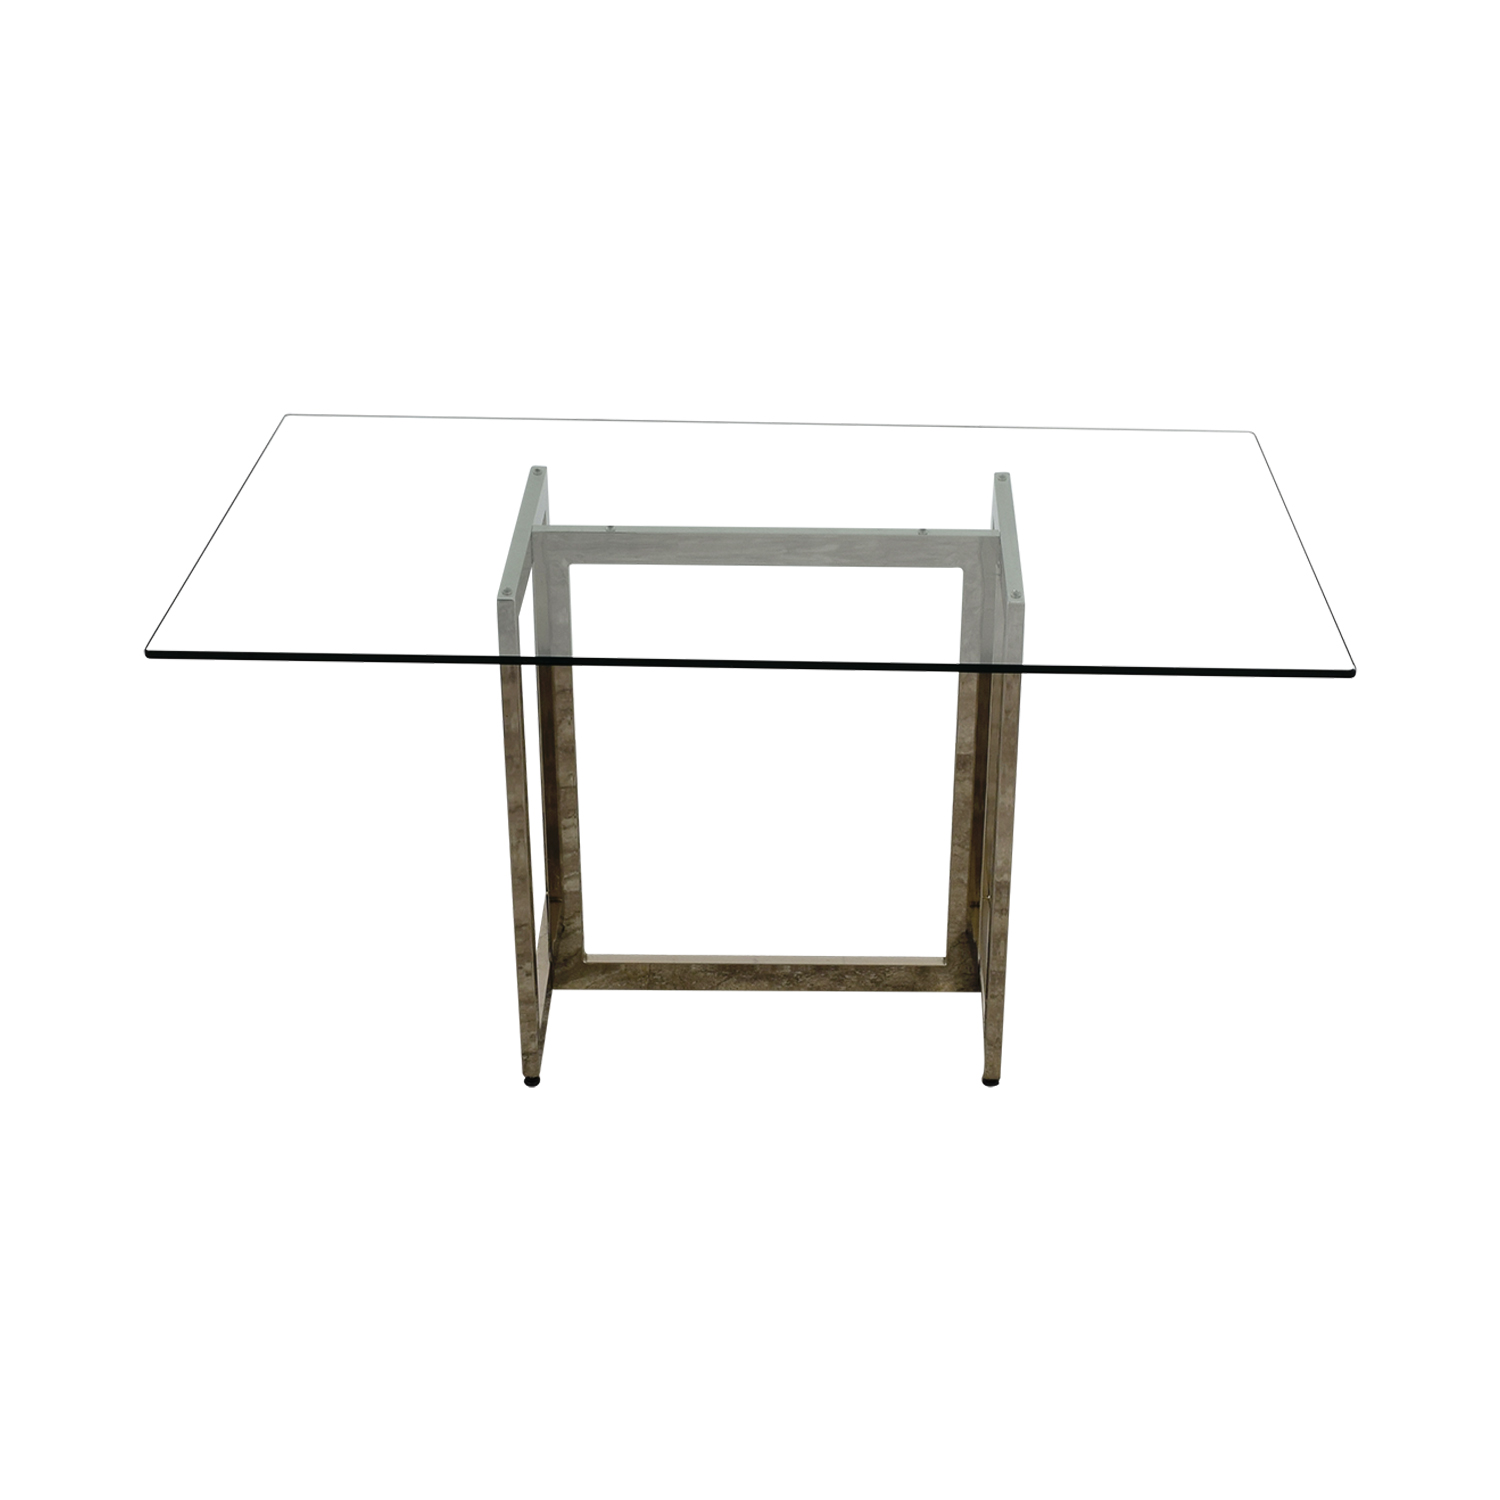 buy West Elm Rectangular Glass and Chrome Dining Table West Elm Dinner Tables